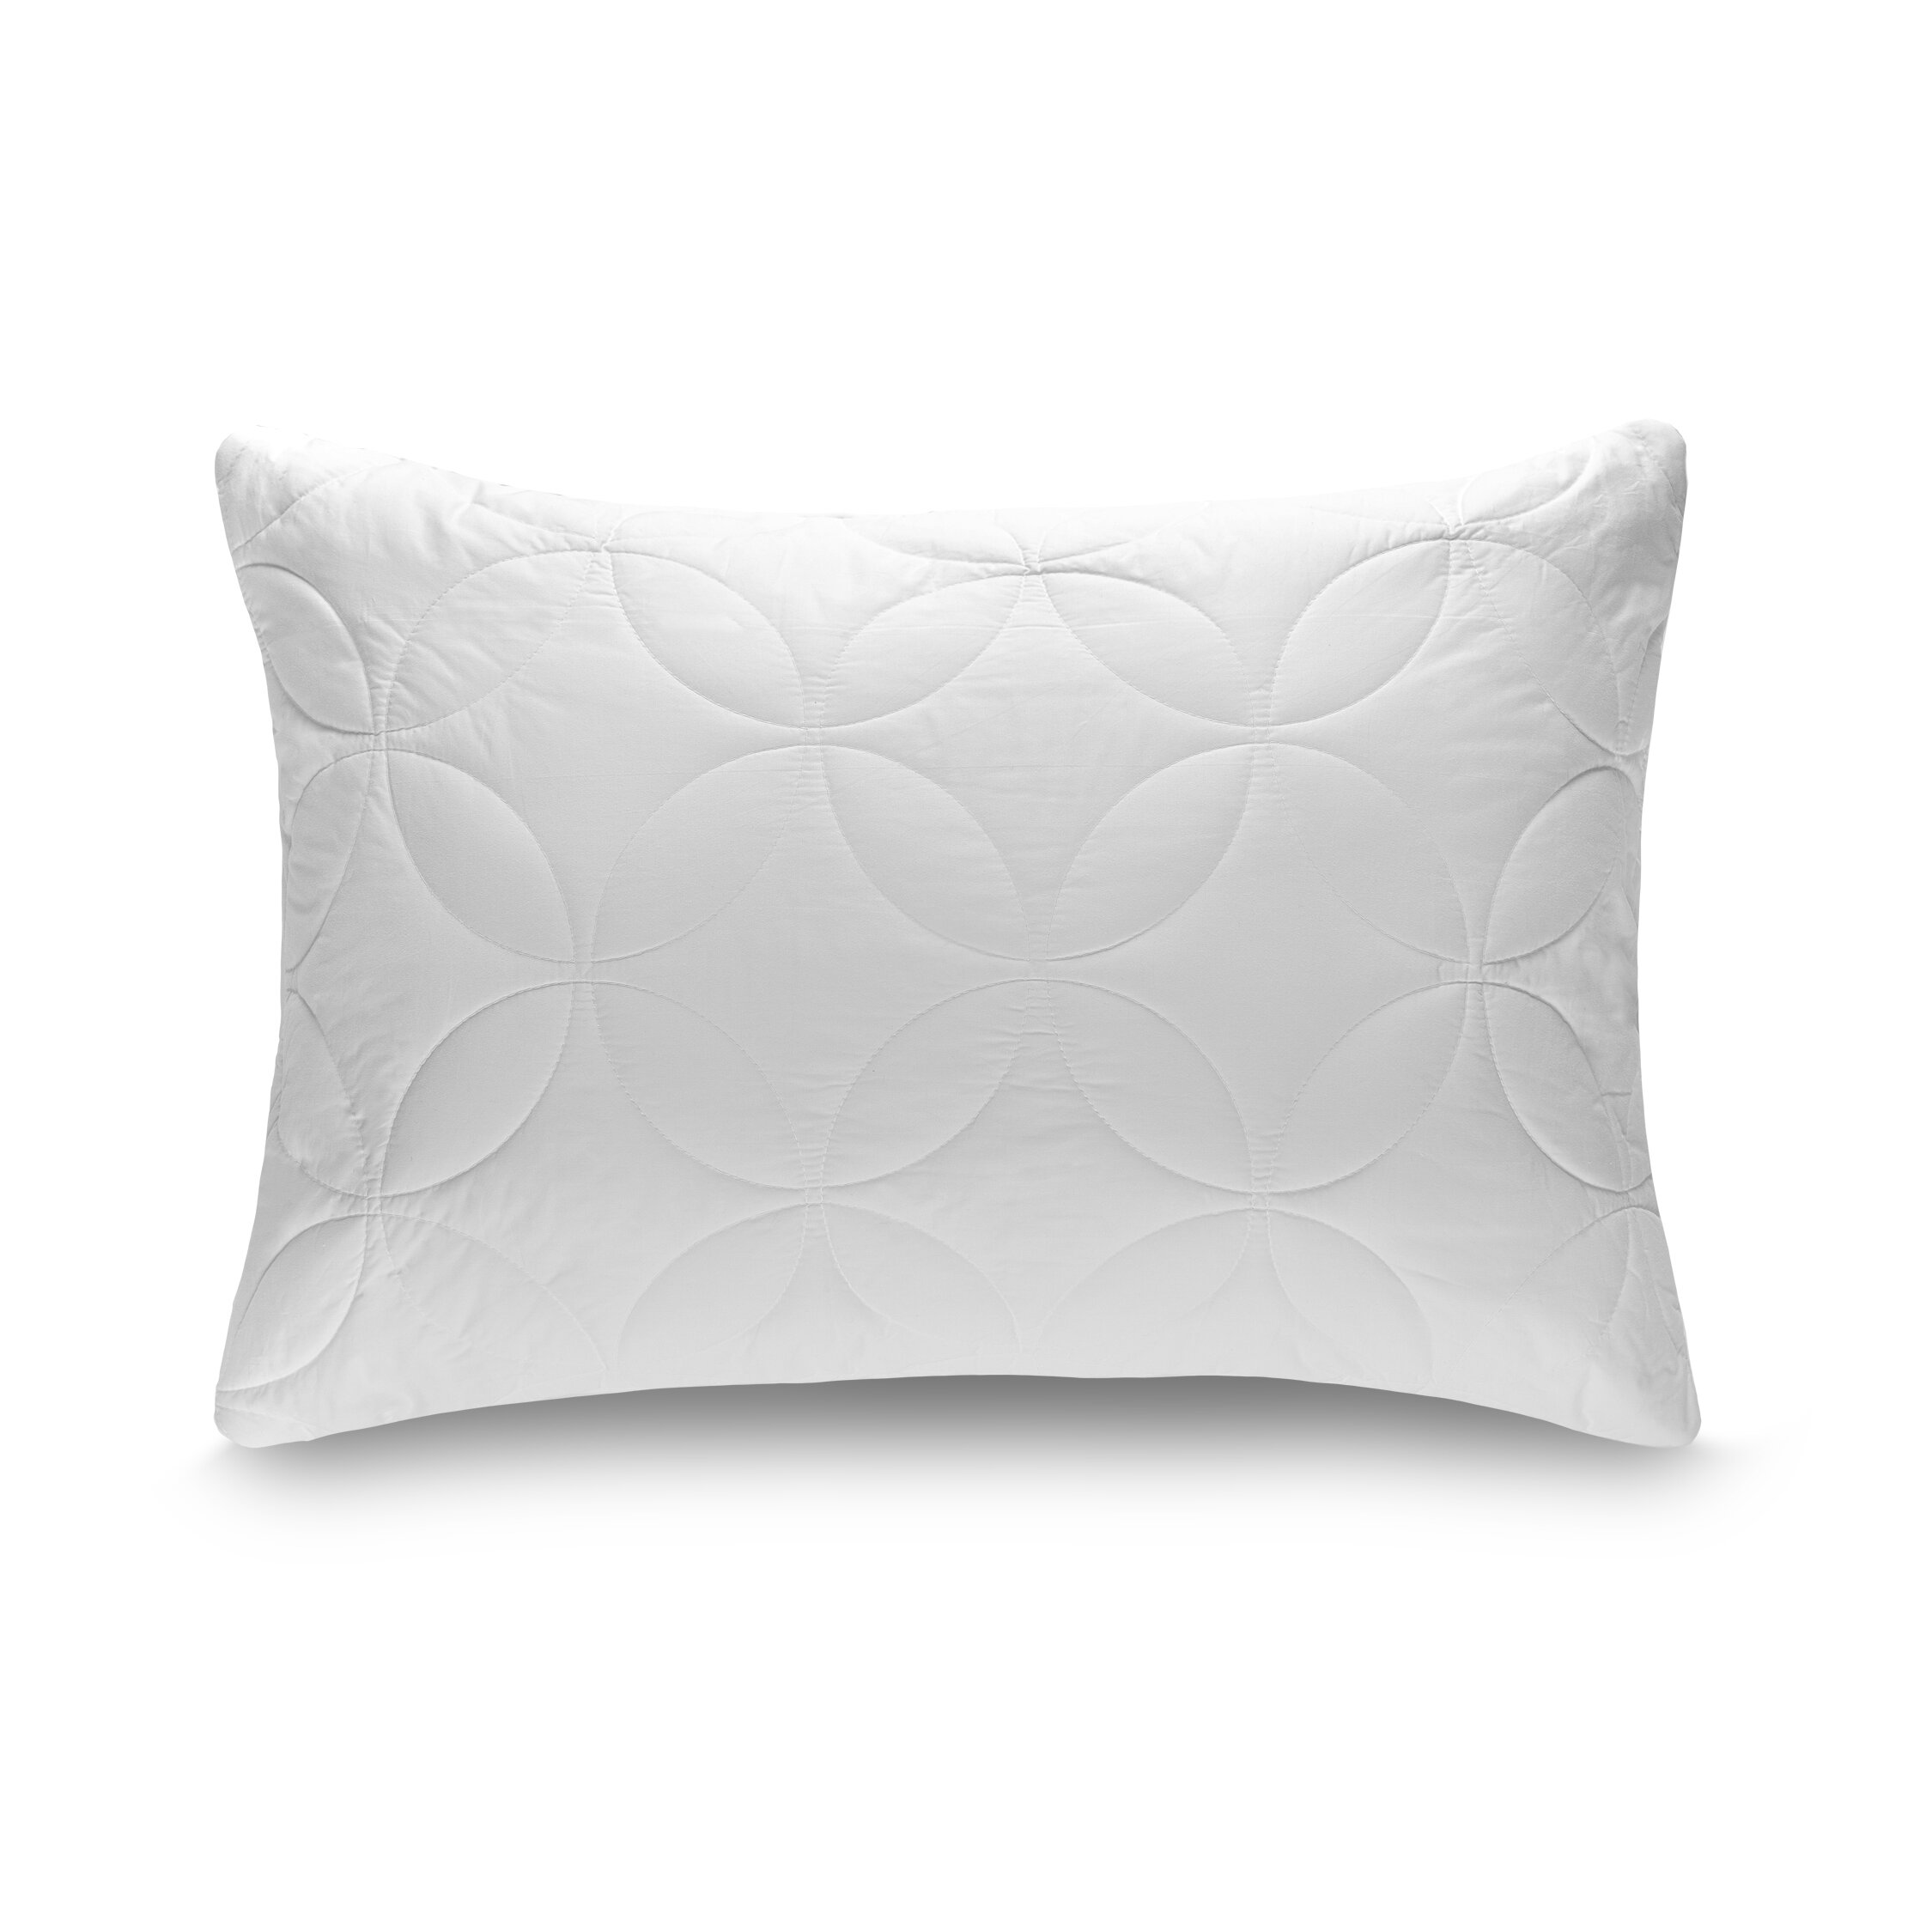 Tempur Pedic Traditional Pillow Extra Soft Reviews : Tempur-Pedic Cloud Soft & Lofty Pillow & Reviews Wayfair